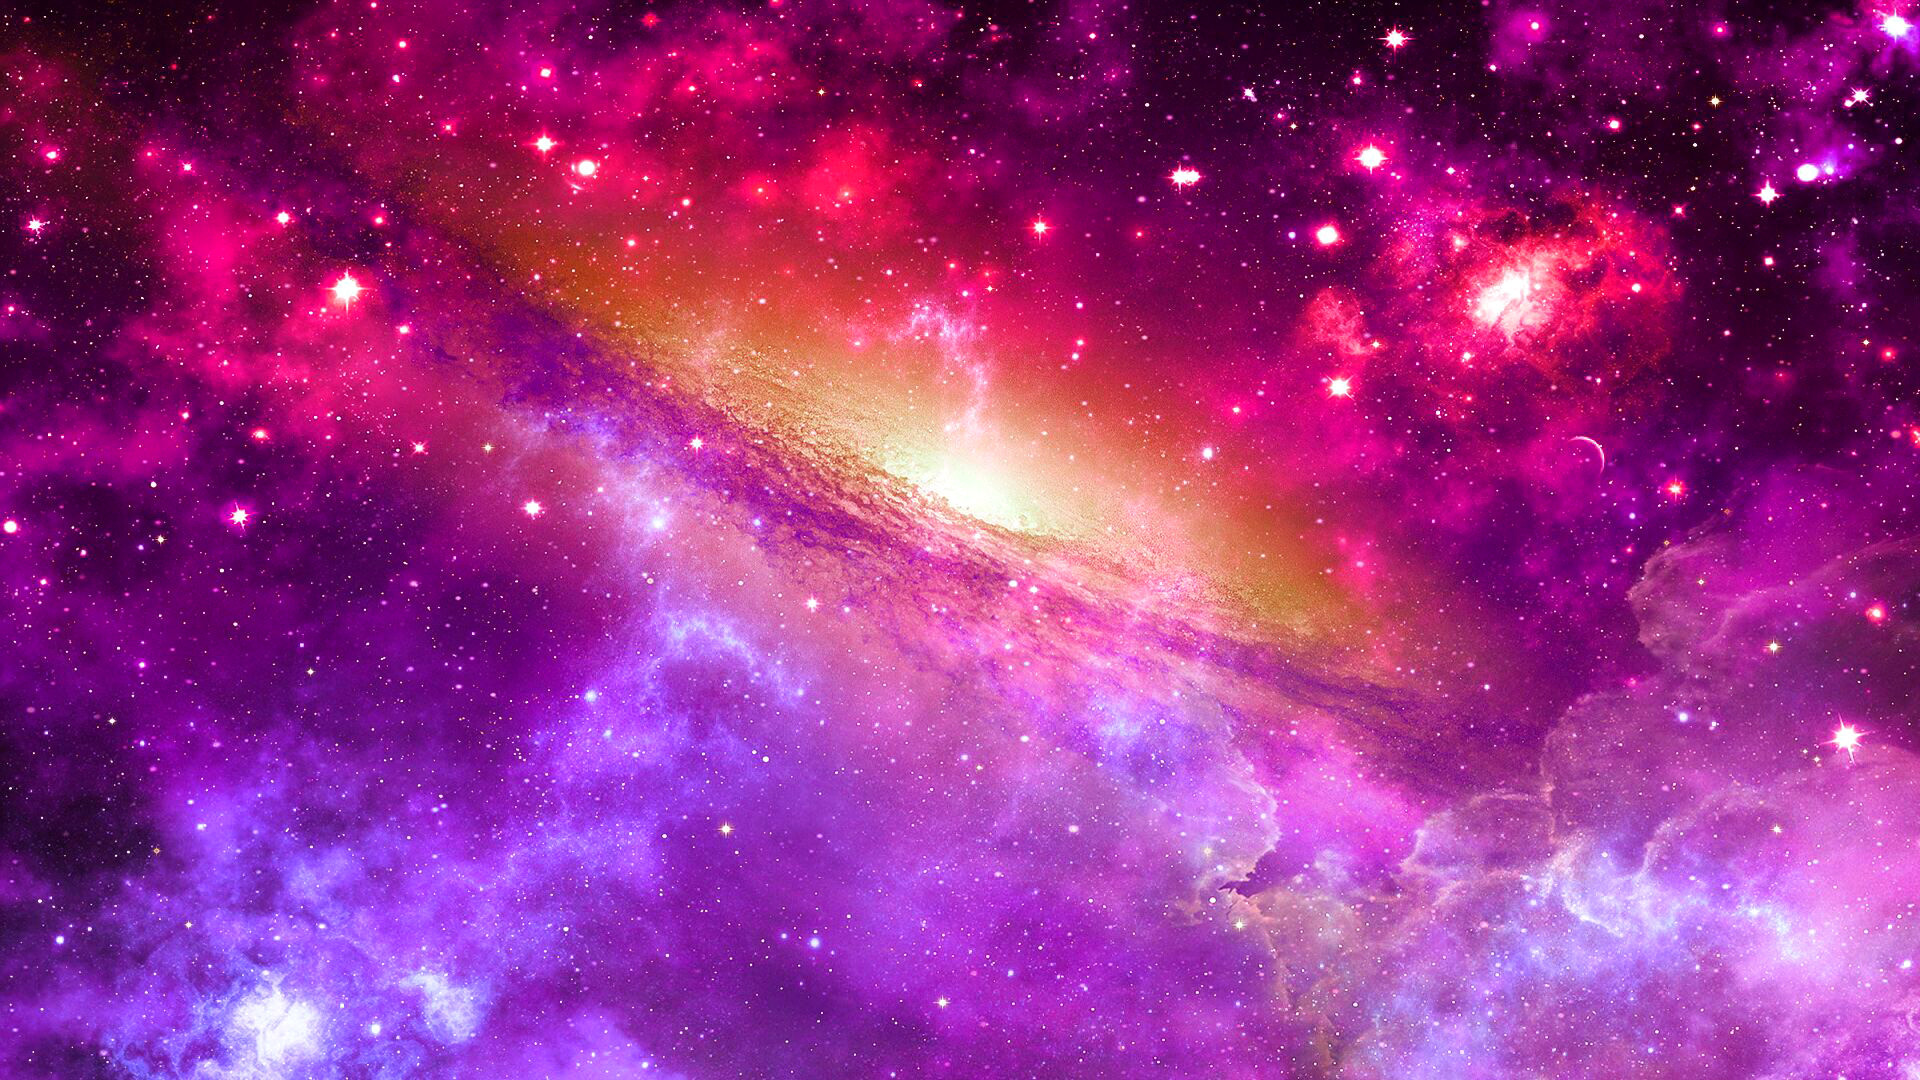 Pink Galaxy Hd Wallpaper Backgrounds   Pink Galaxy   1920x1080 1920x1080